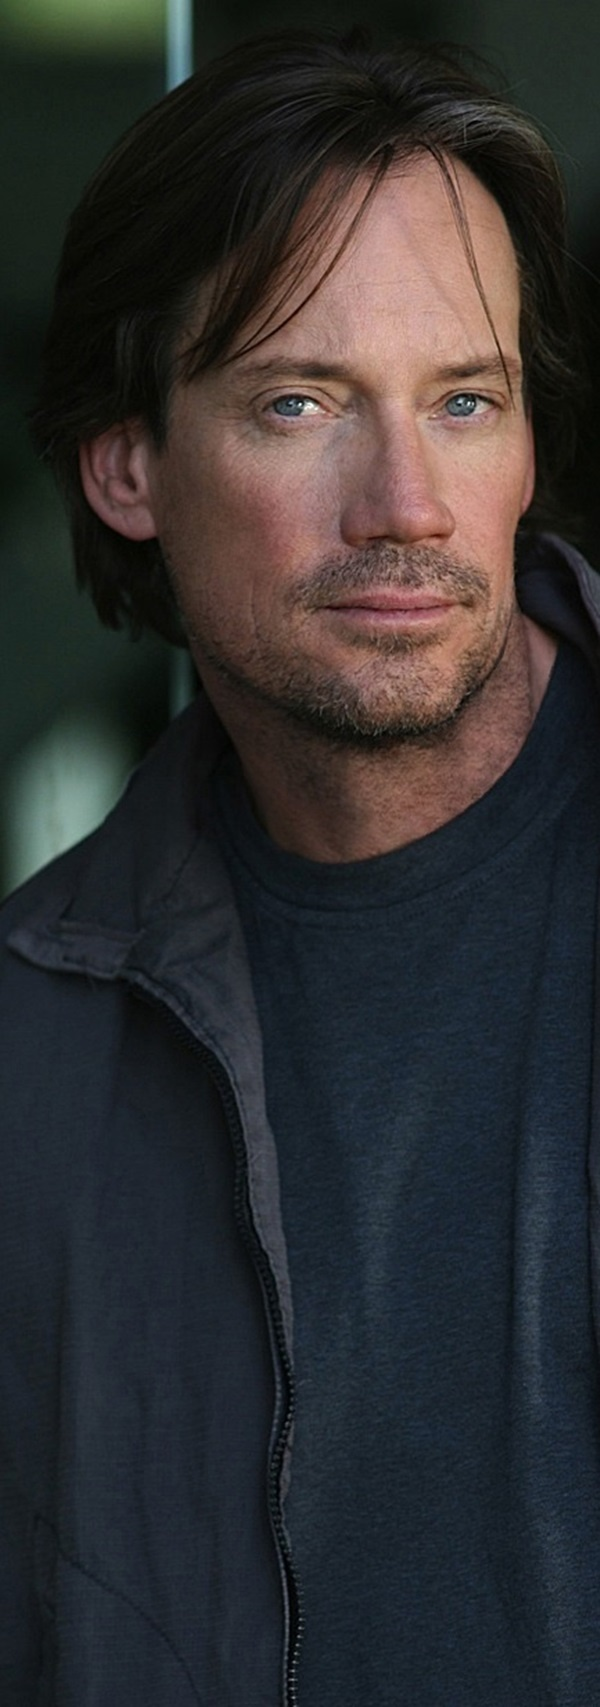 Kevin Sorbo - Do I Seriously Need To Tell You Why?